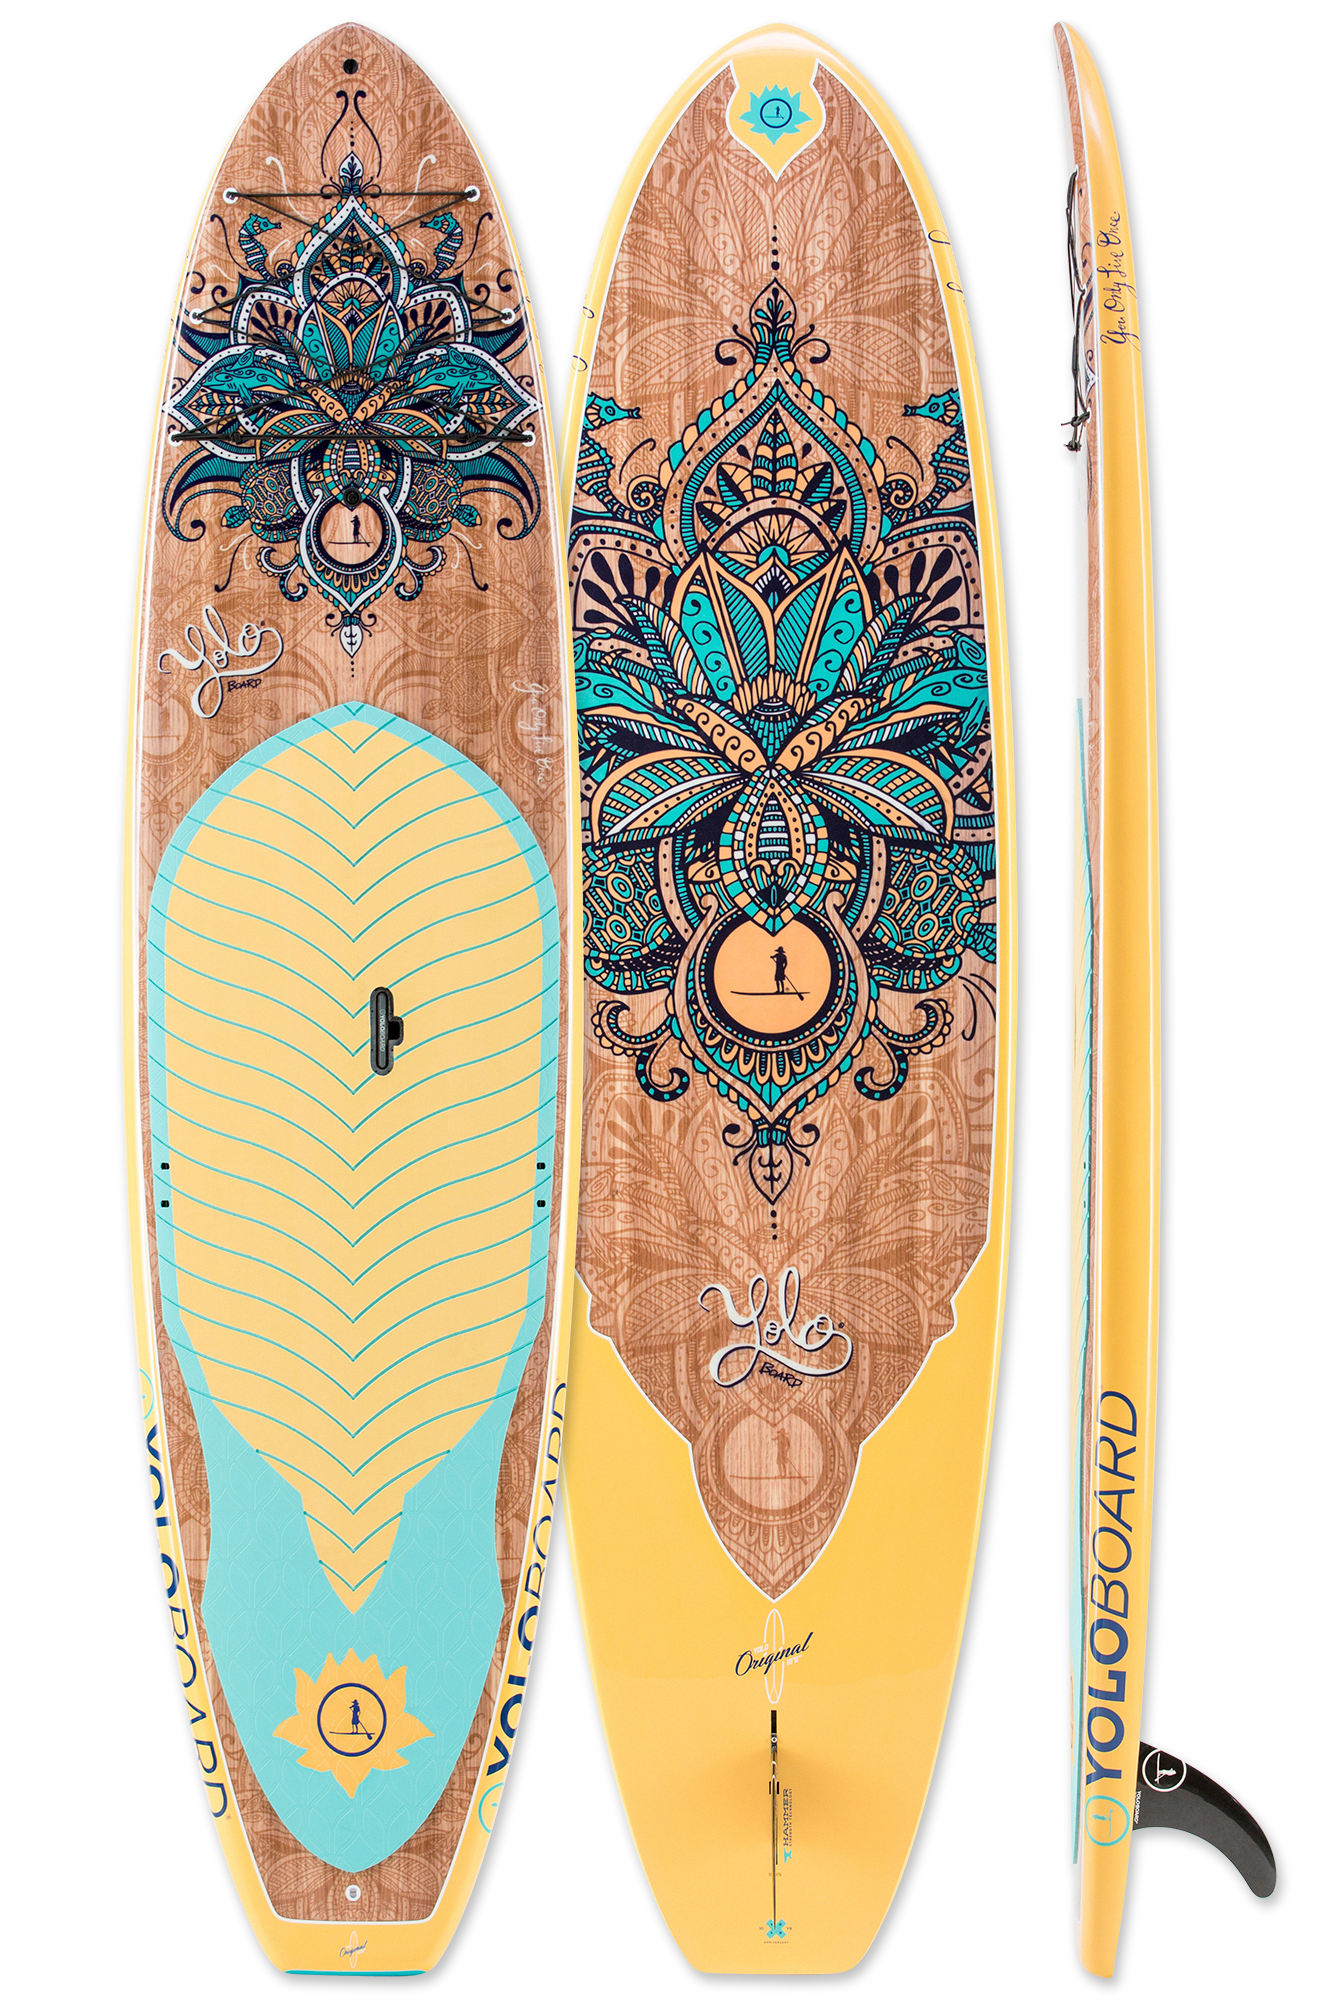 The Serenity Original Board Is Available In 10 6 And 12 Check Out Yoloboard Com For The Latest Boards An Paddle Boarding Paddle Board Surfing Standup Paddle